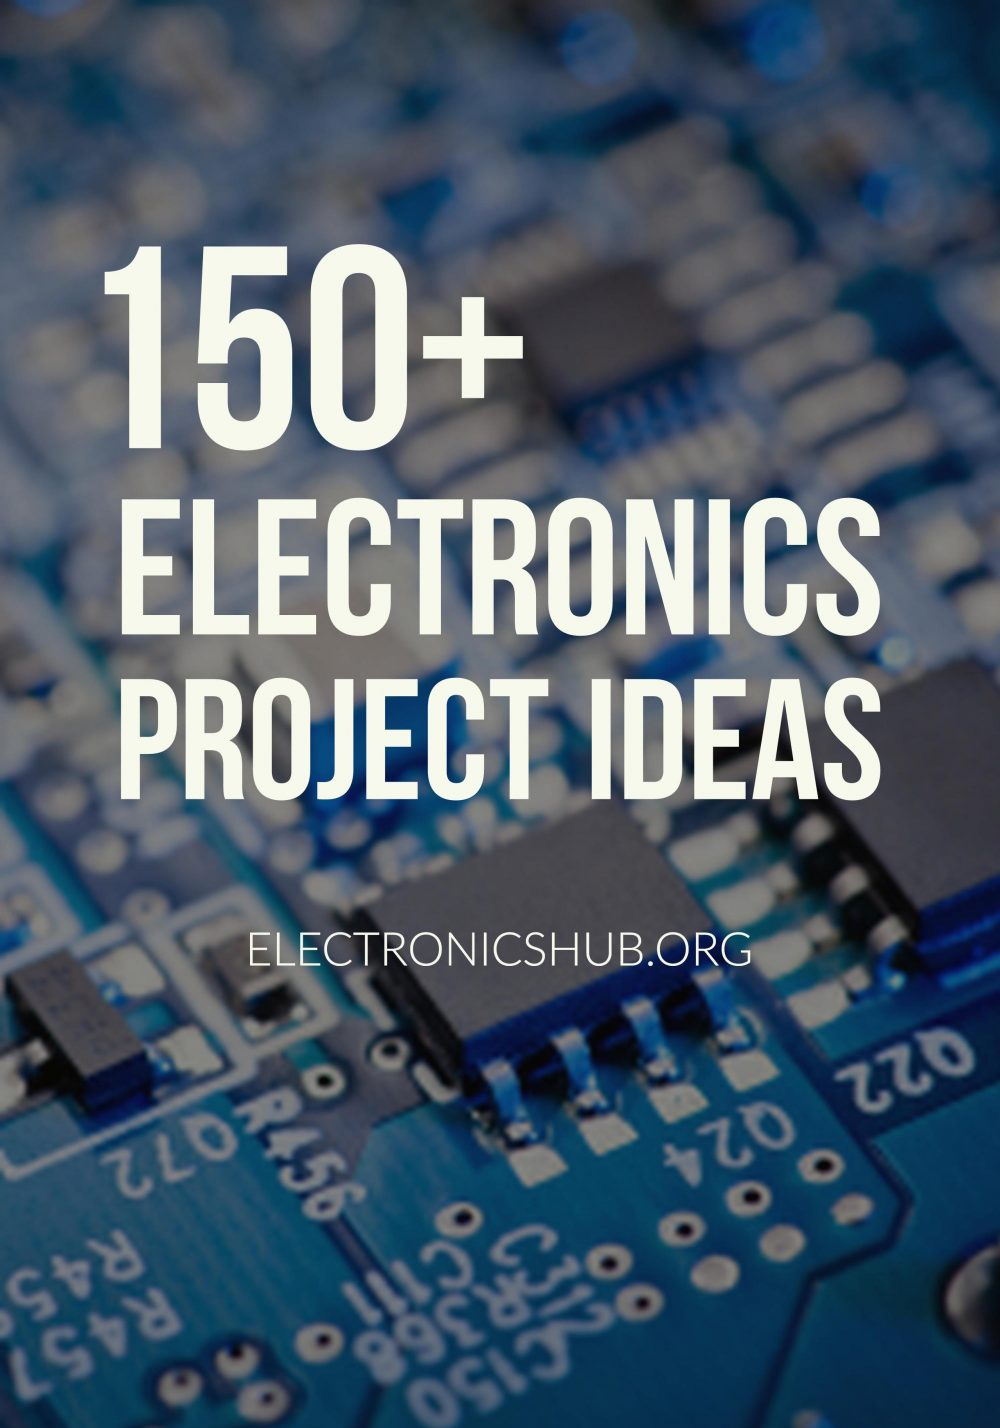 medium resolution of 150 electronics projects for engineering students telephone work interface device box wiring diagram free download